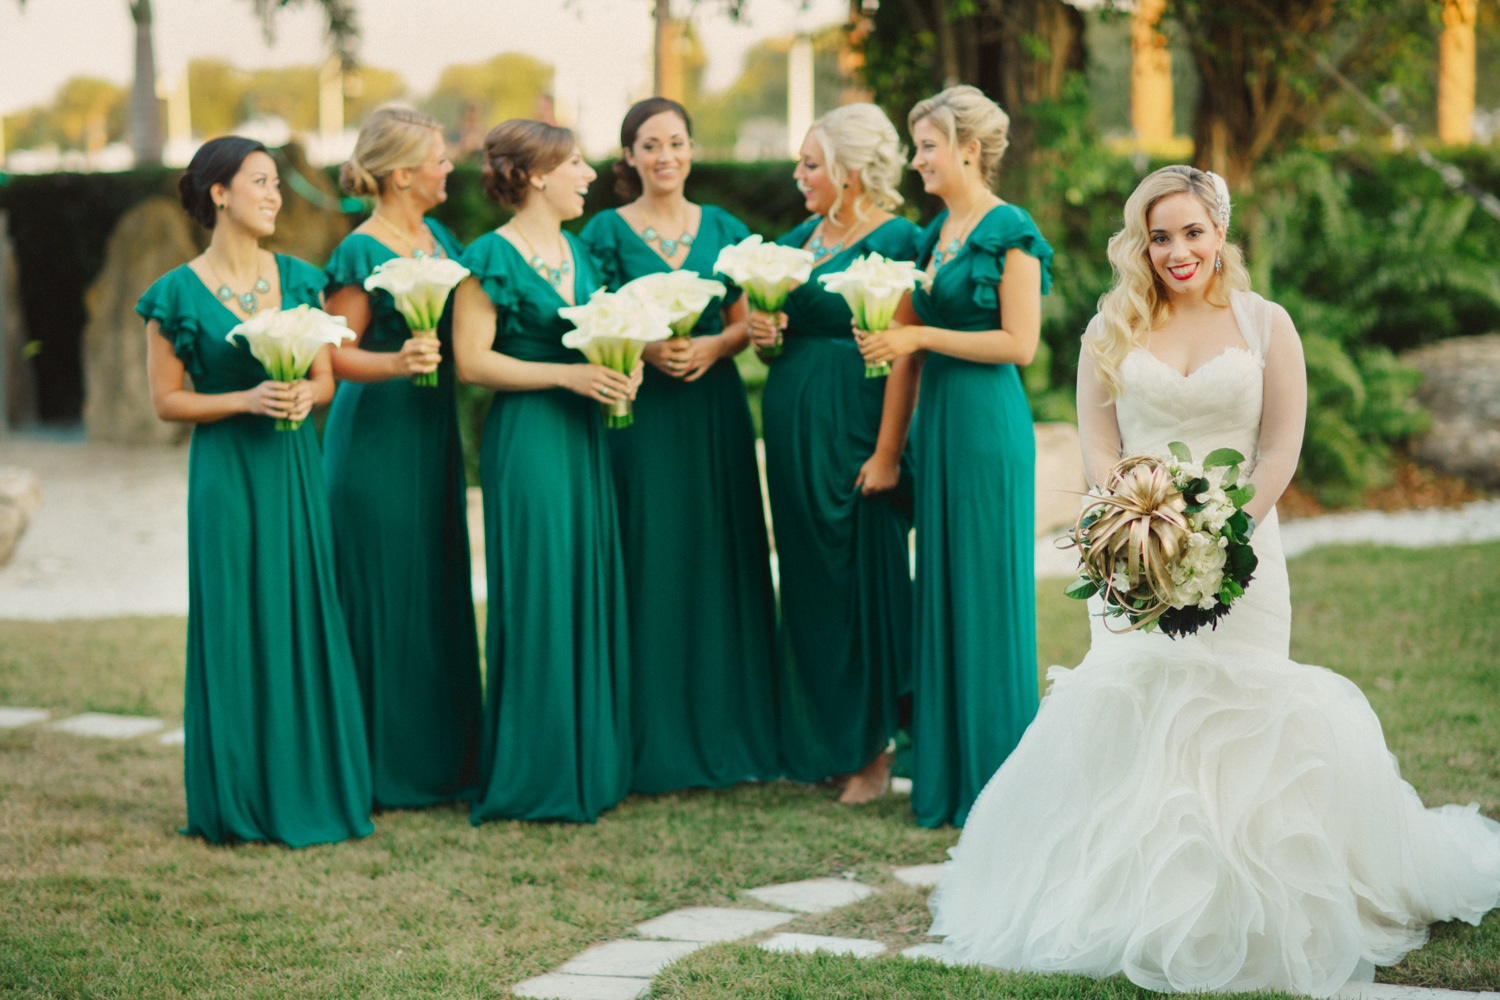 st-petersburg-wedding-13-06182015-ky